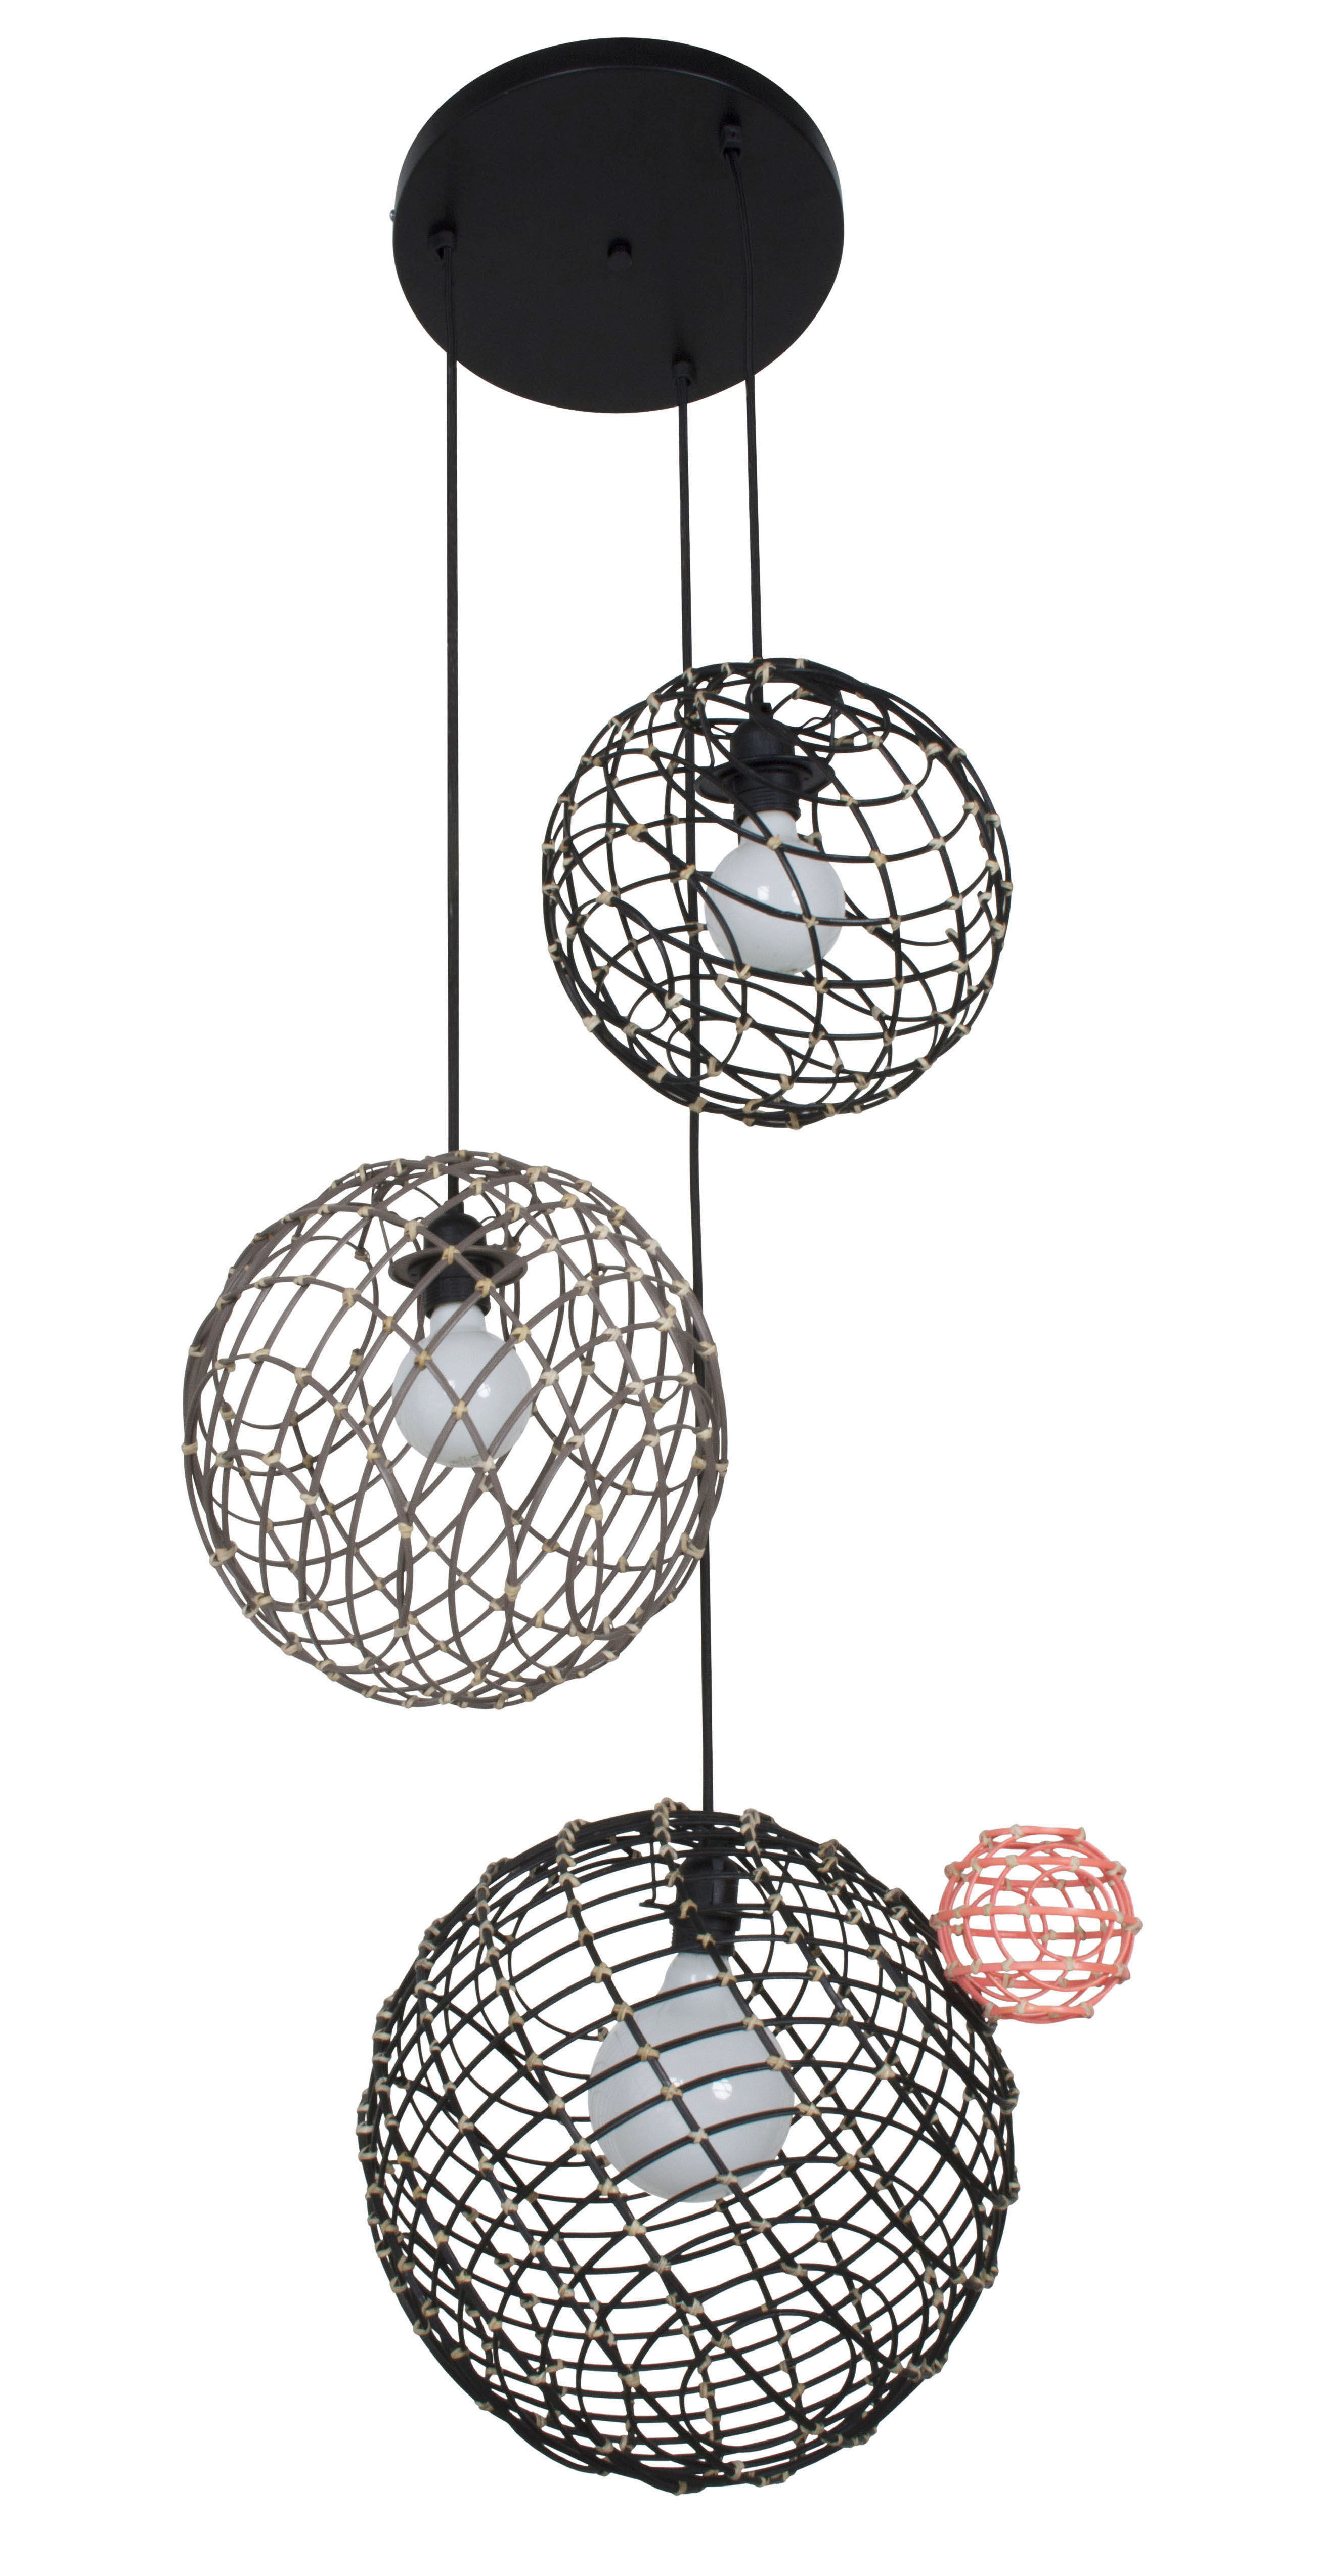 sphere multiple bambus set mit 3 kugeln forestier. Black Bedroom Furniture Sets. Home Design Ideas